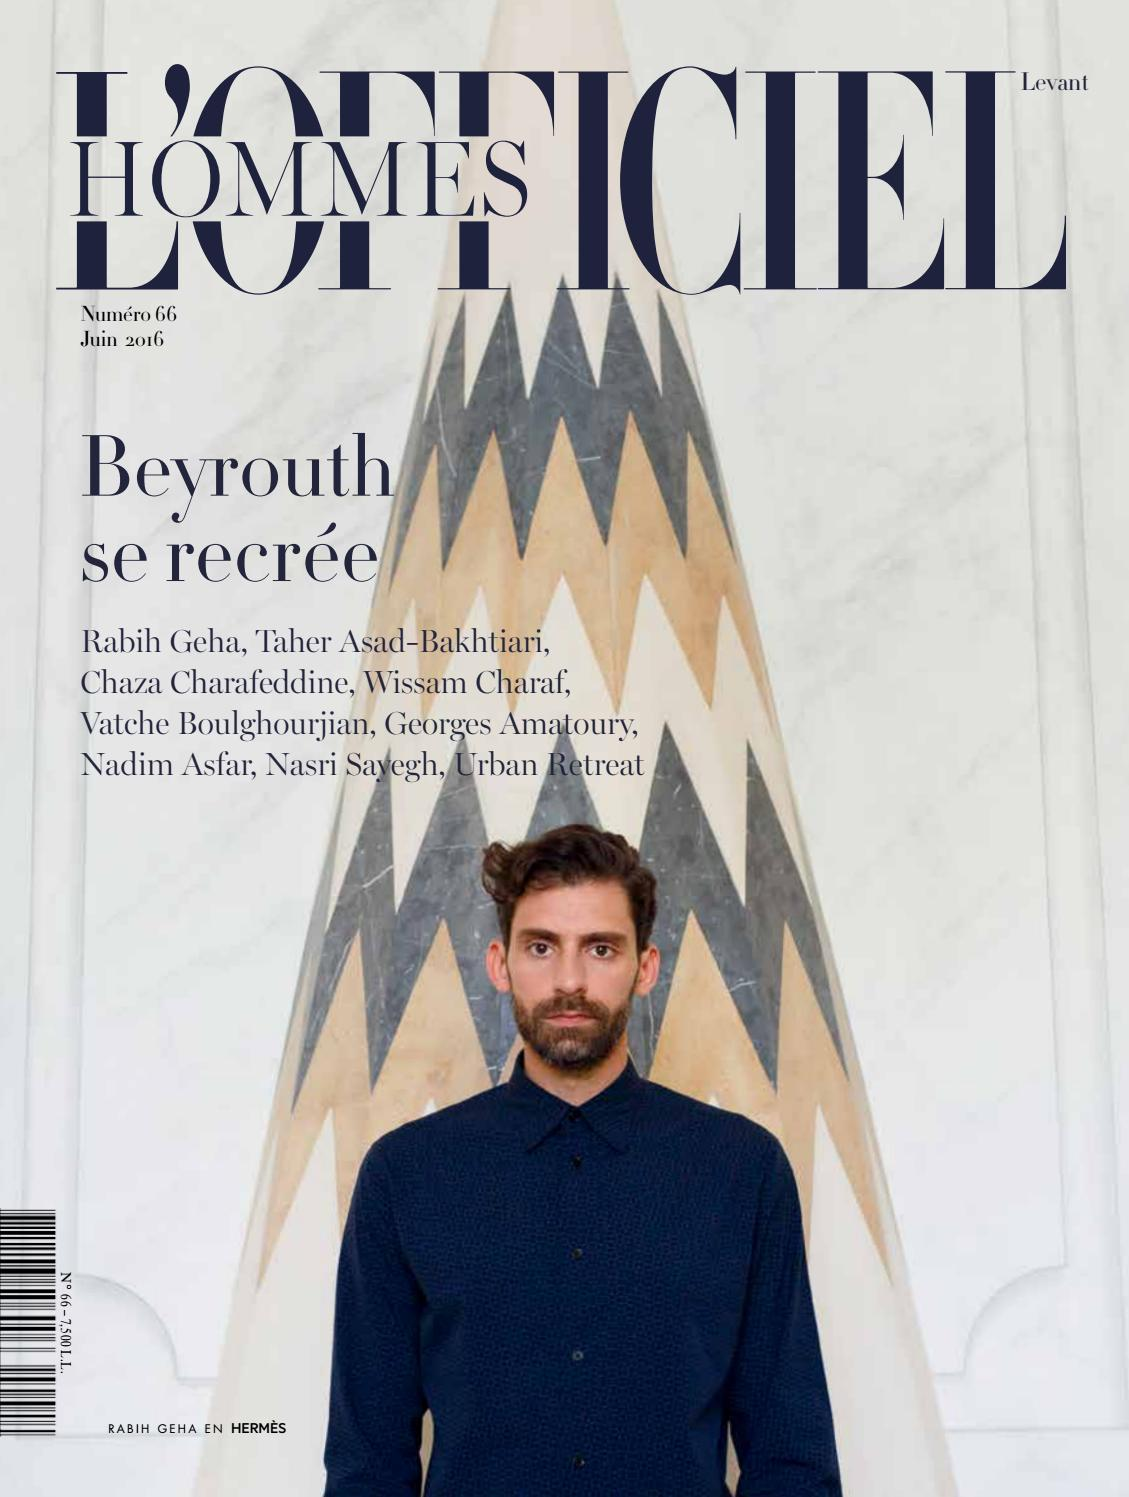 aa3a210cddcd L Officiel Hommes-Levant, June Issue 66 by L Officiel Levant - issuu